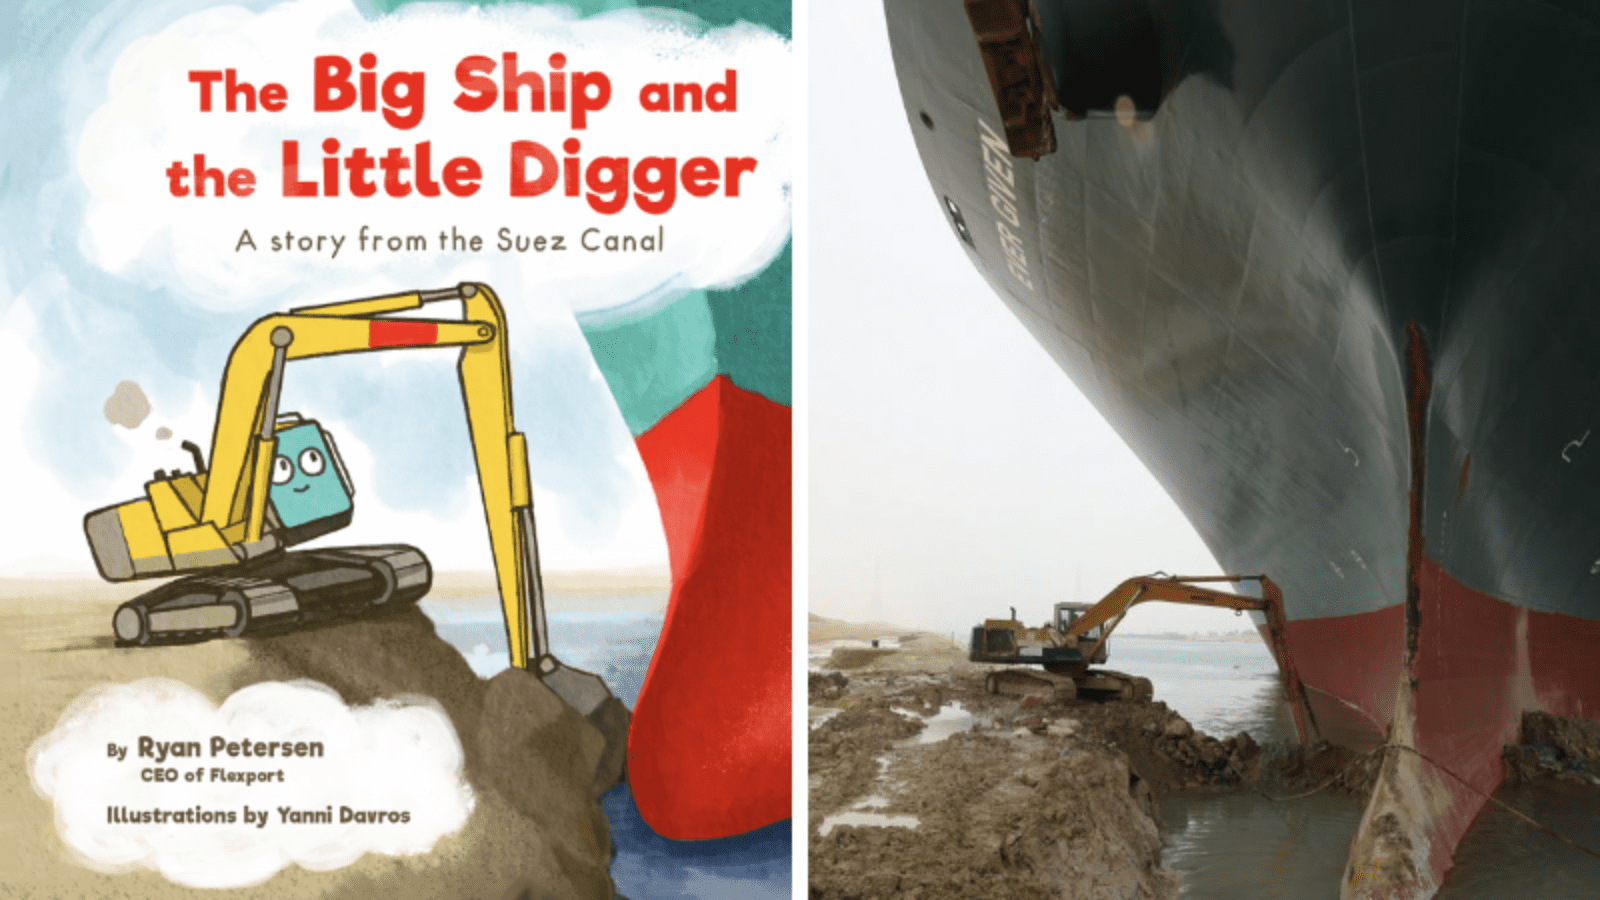 The big ship and the little digger